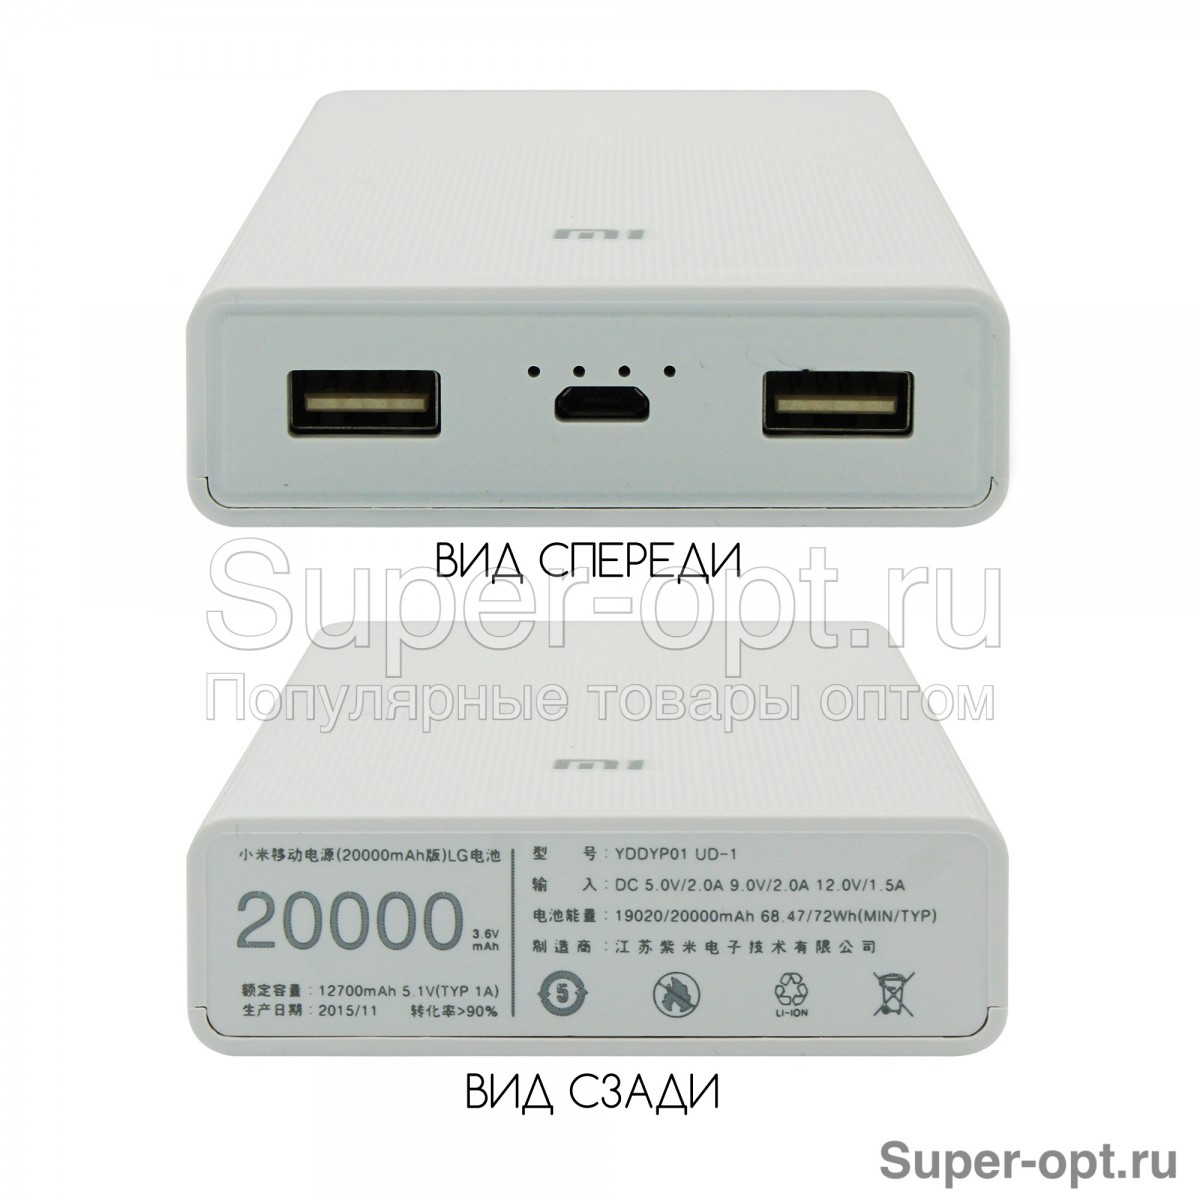 Power Bank Mi 20000 mAh